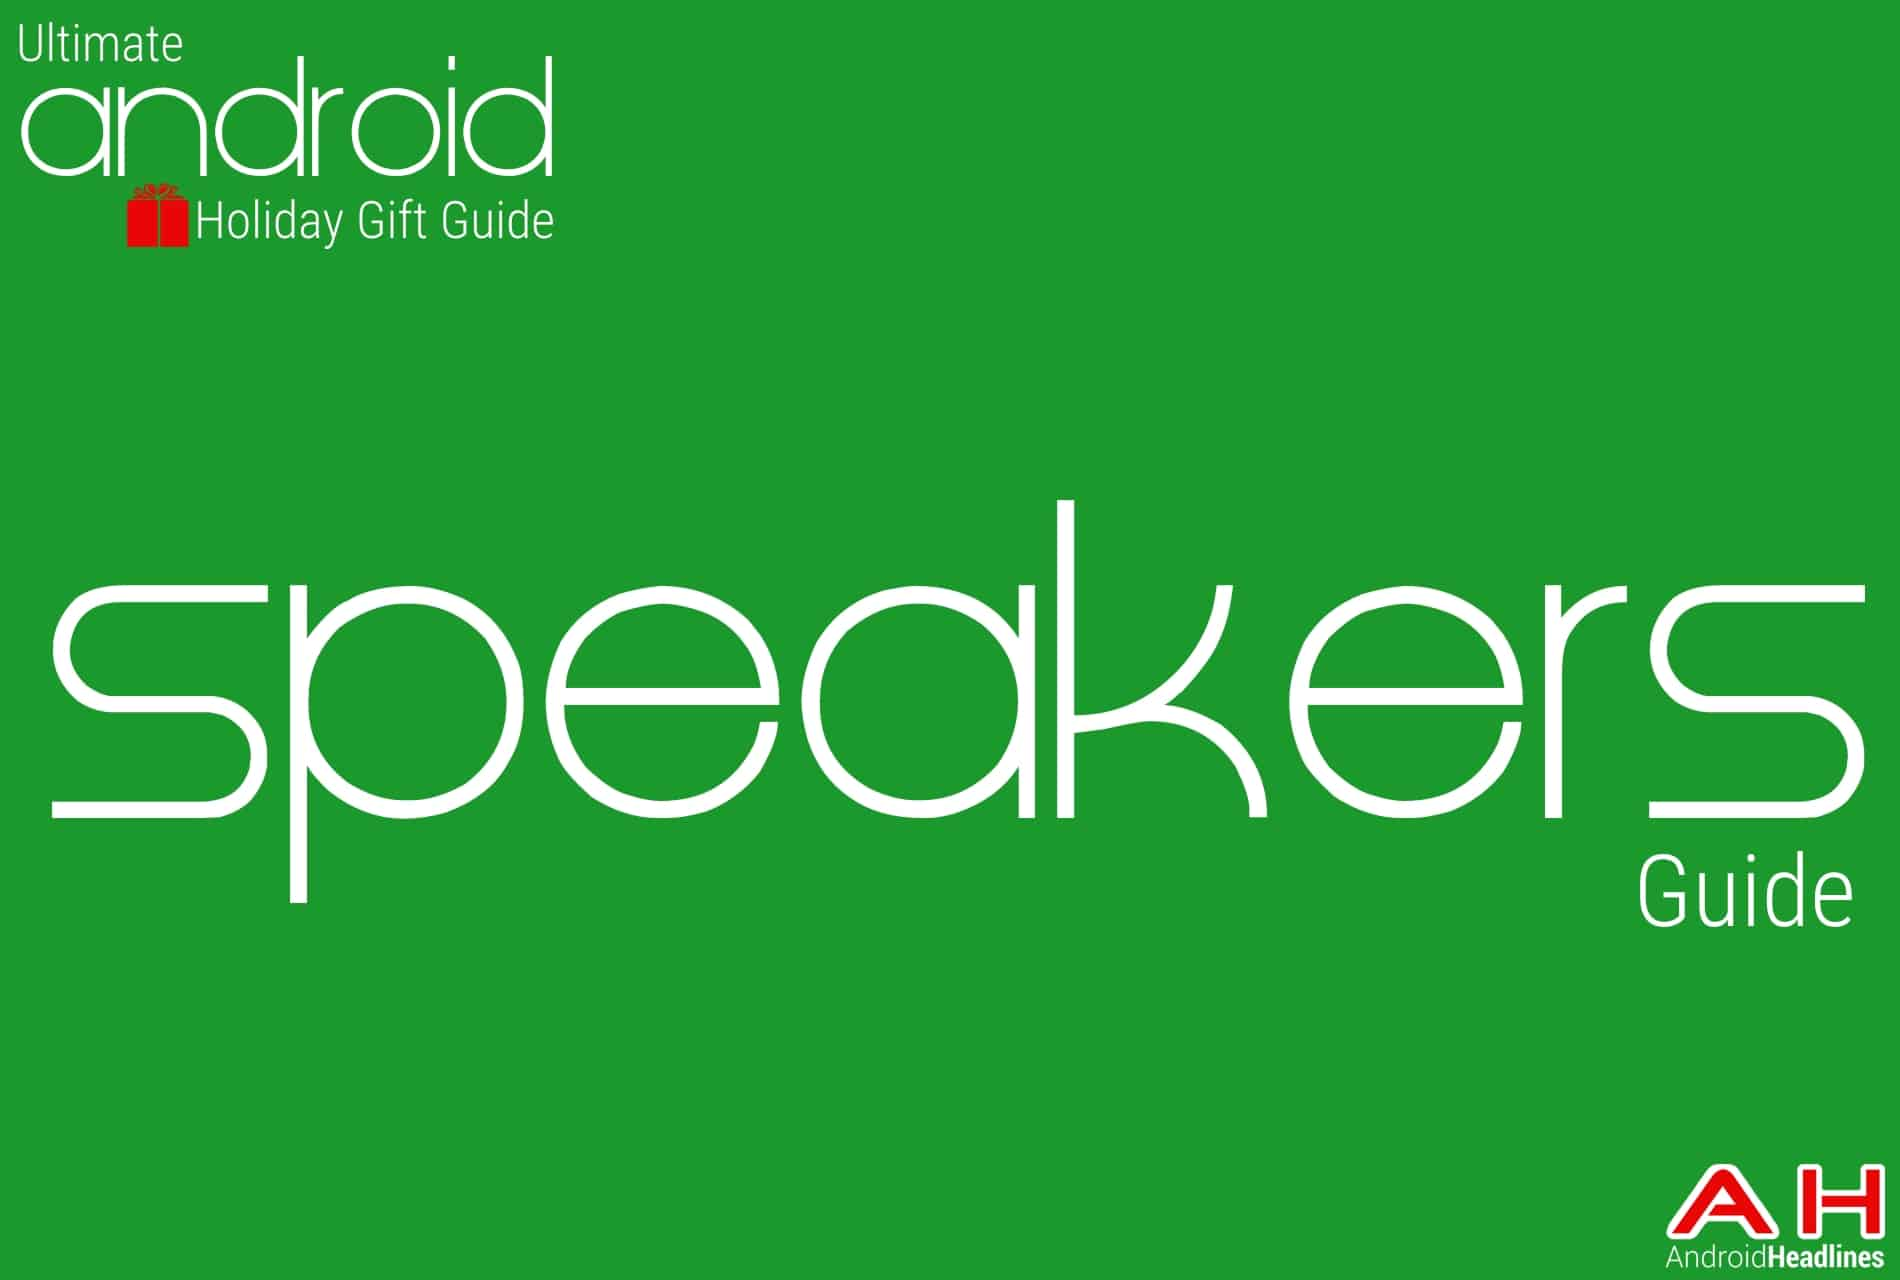 Best Mobile Speakers Guide - Android Holiday Gift Guide Top 10